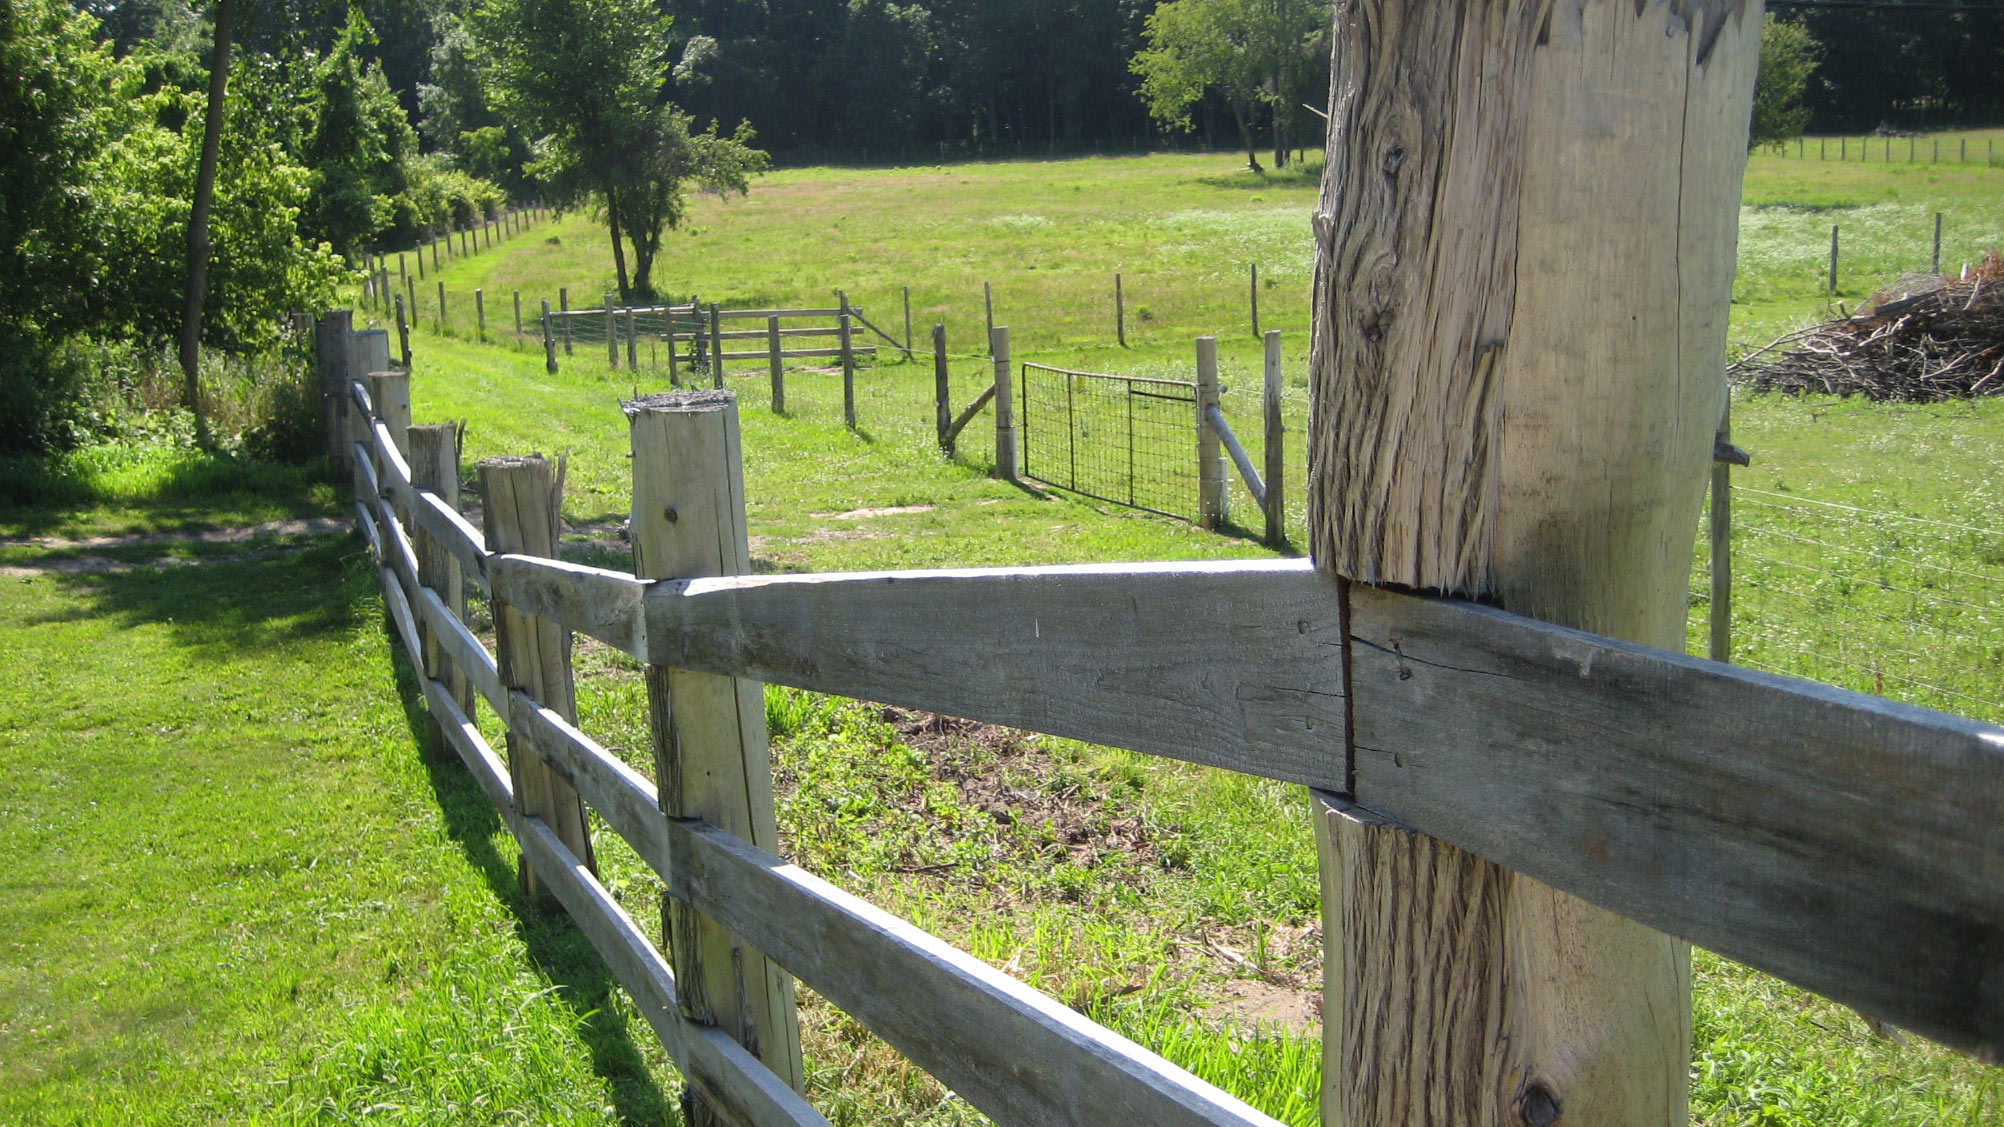 fence line and green field